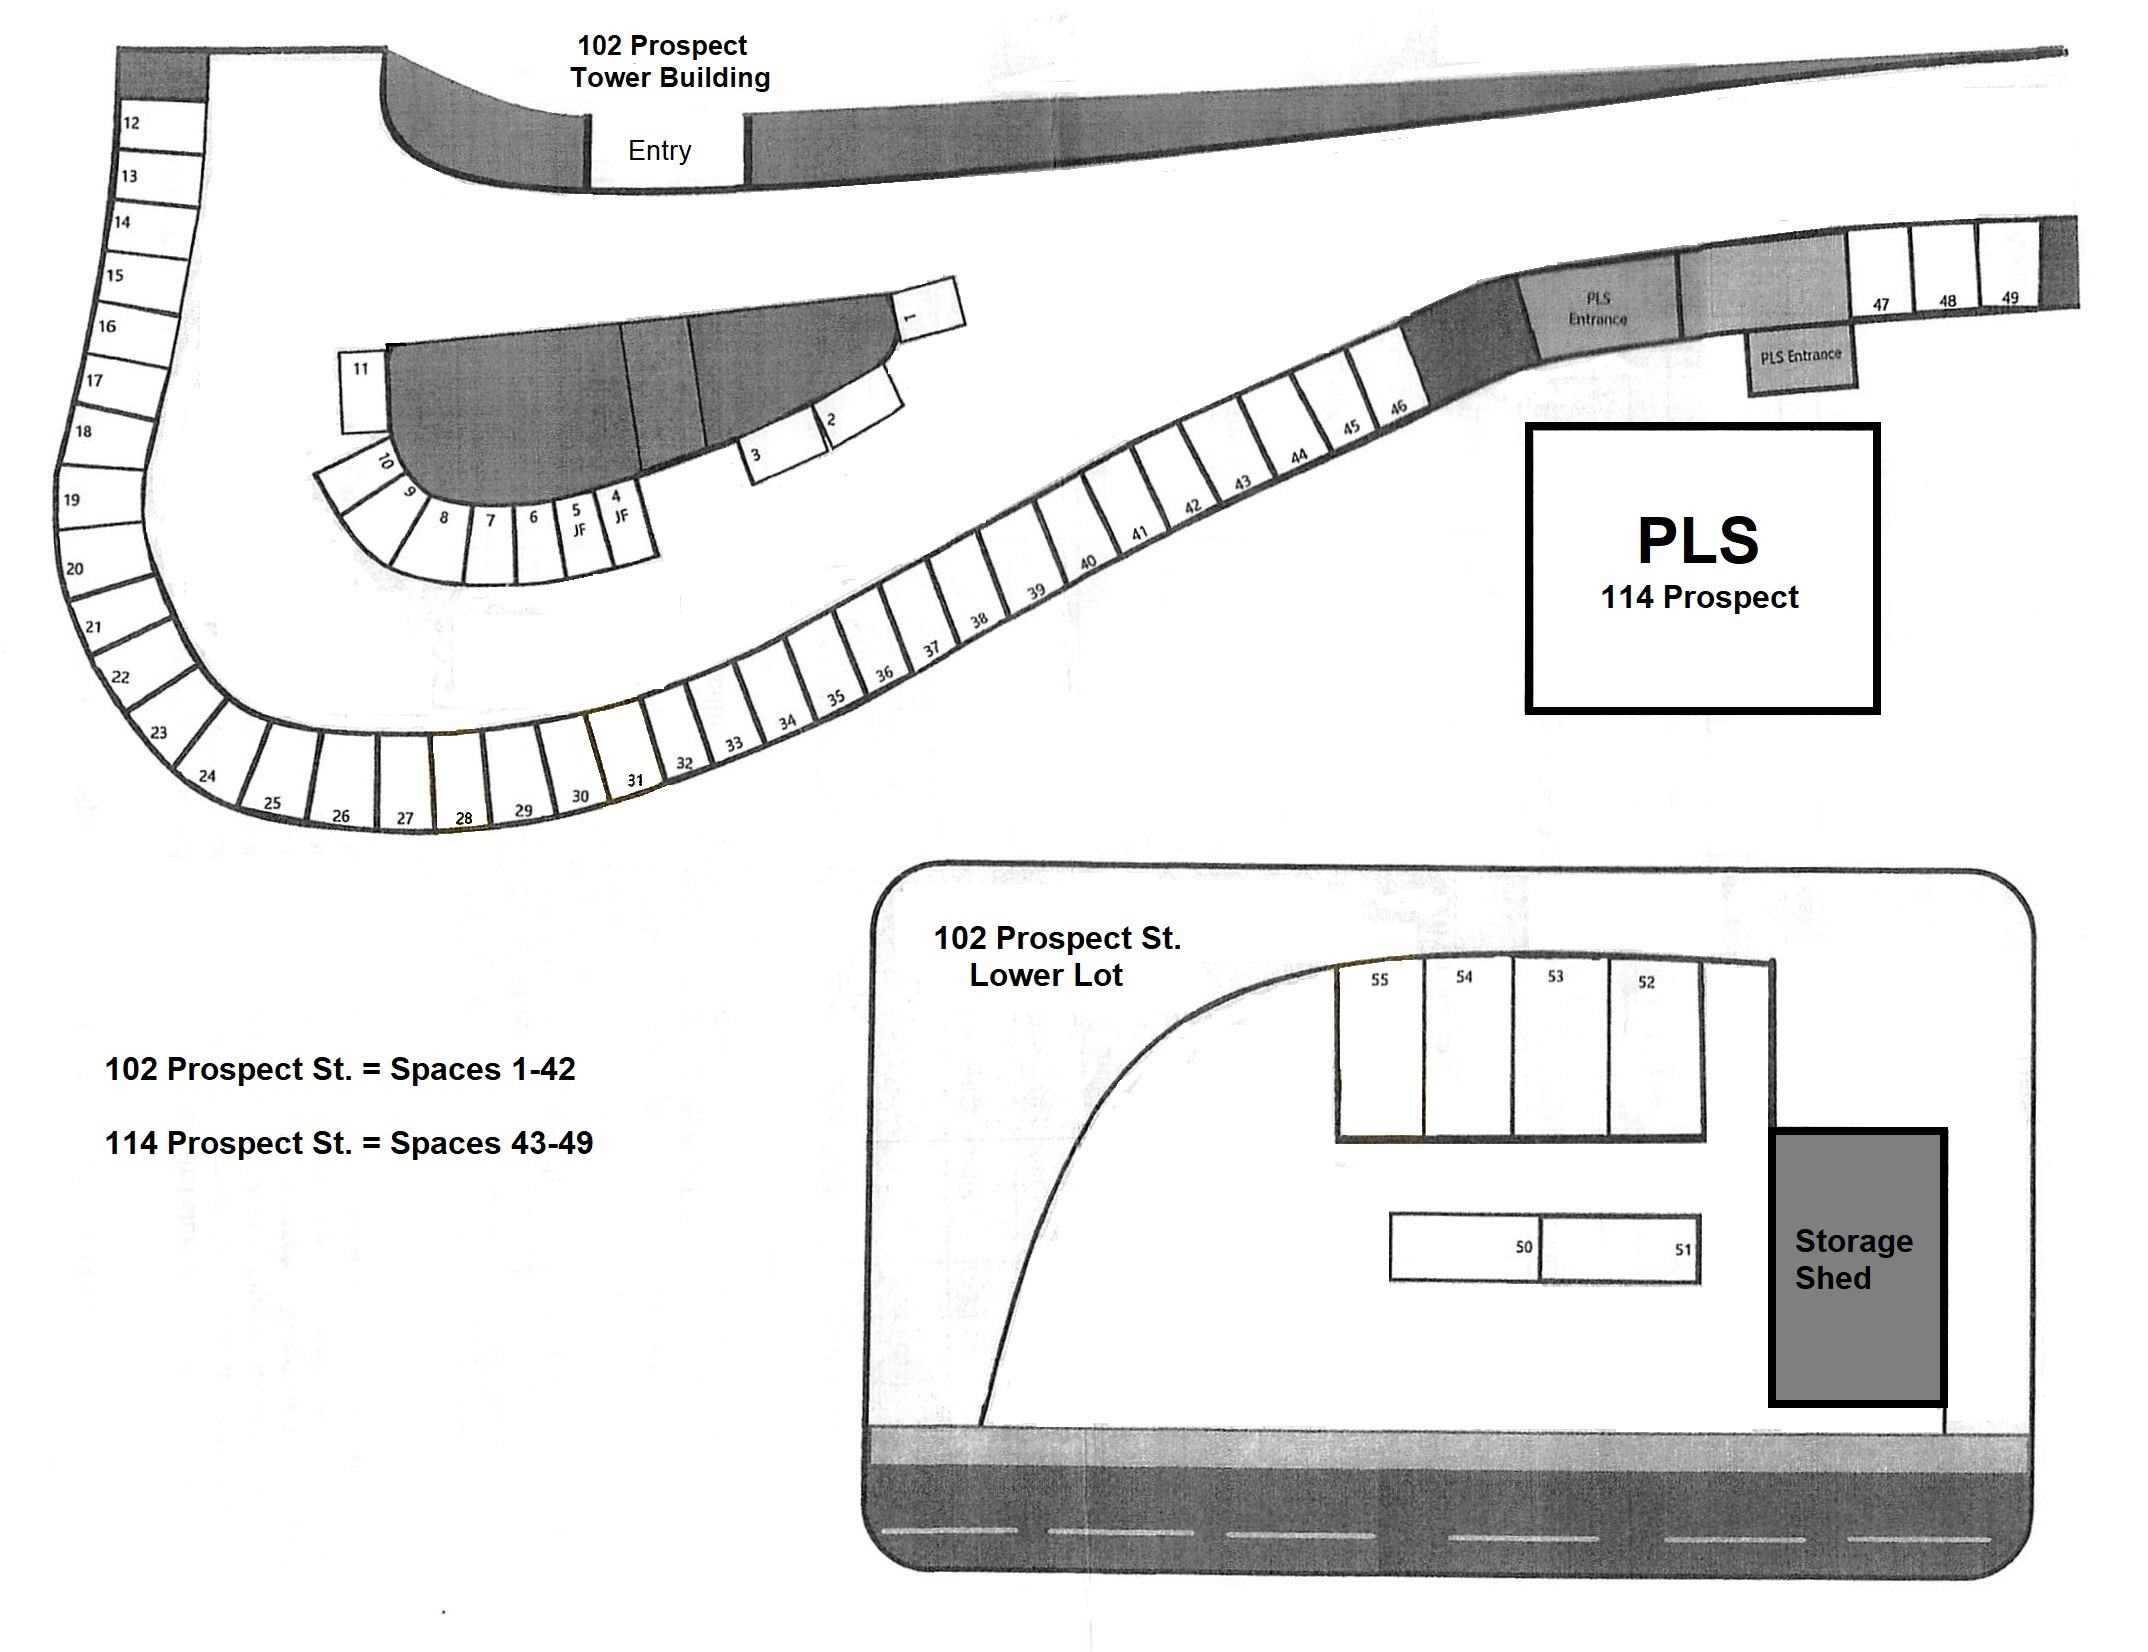 Tower and Carriage House Parking Map